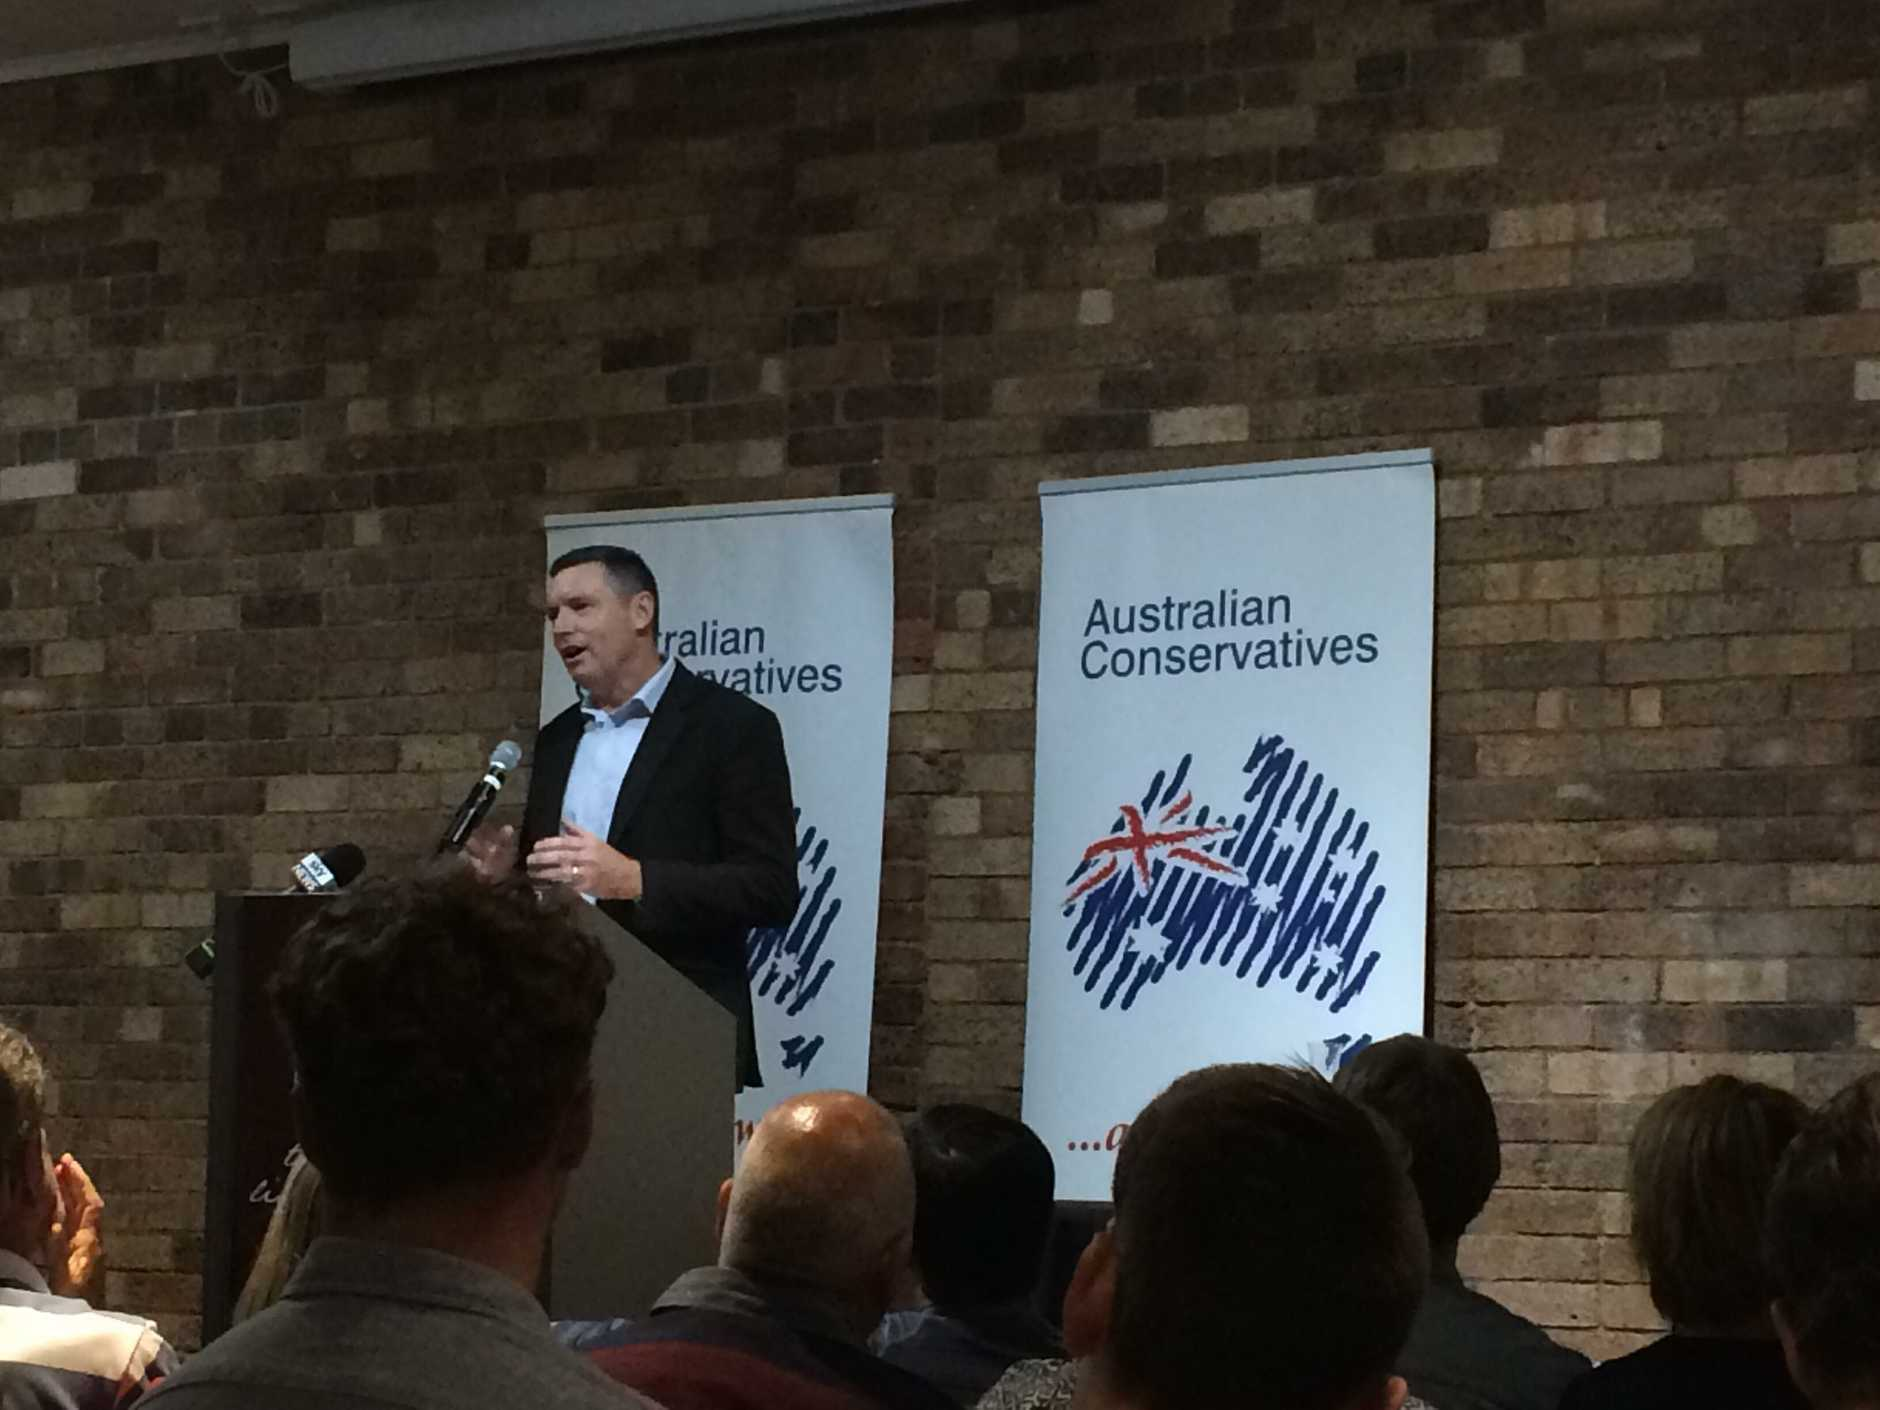 Lyle Shelton has joined the Australian Conservatives